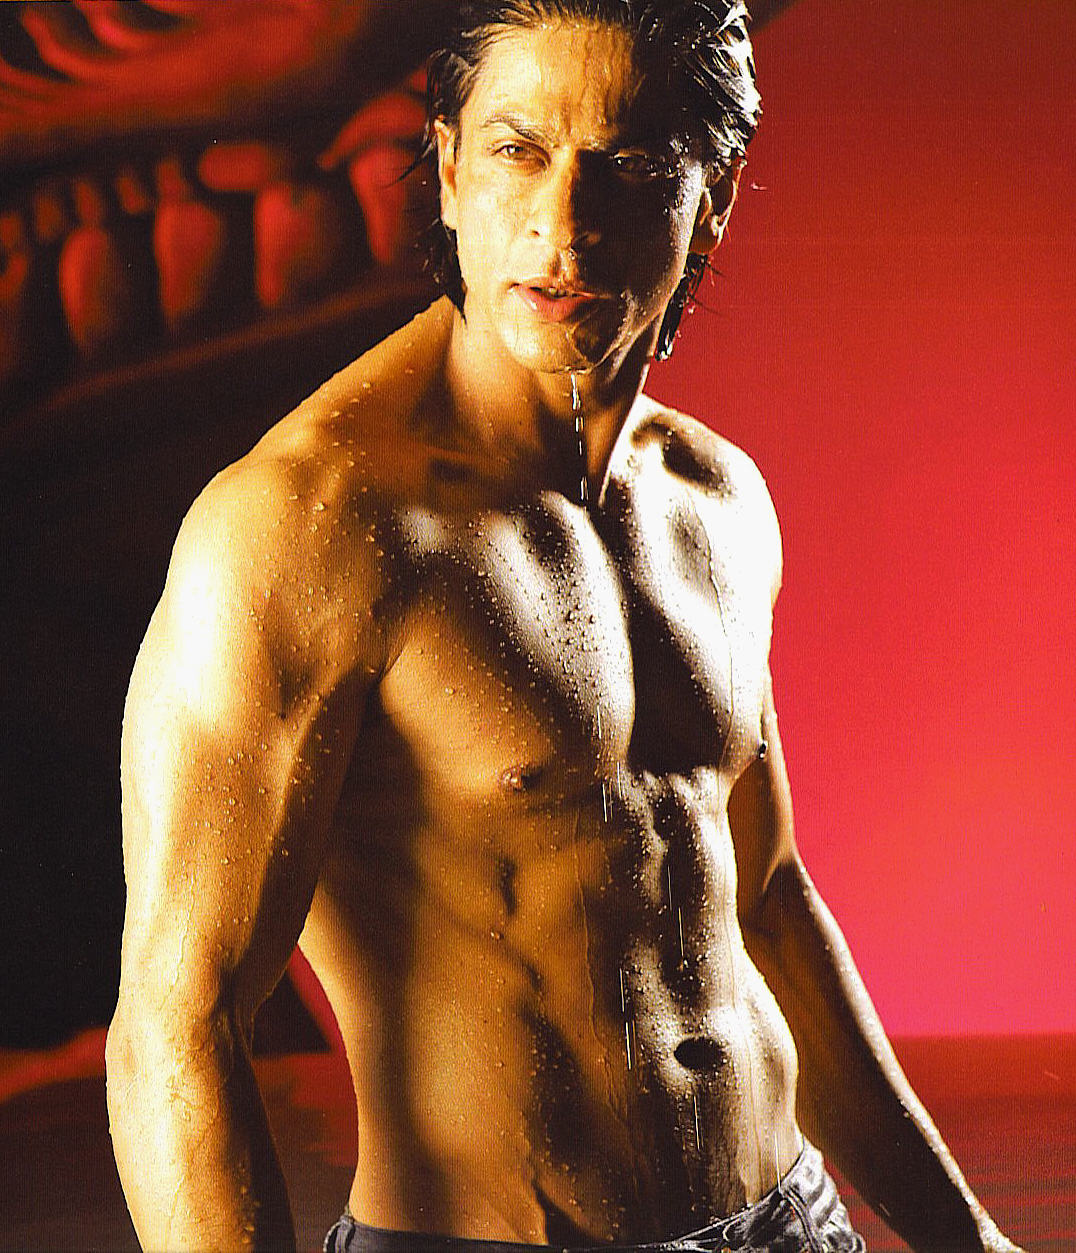 http://1.bp.blogspot.com/--H0EmnNZdxA/TyWTYWsYlPI/AAAAAAAADgE/M6i2IHppVjw/s1600/shahrukh-khan-pictures-sharukh-khan-hair-style-pics-pictures-%2Bsrk-khan-images-photos-shahrukh-khan-wallpapers-srk-photos-10.jpg